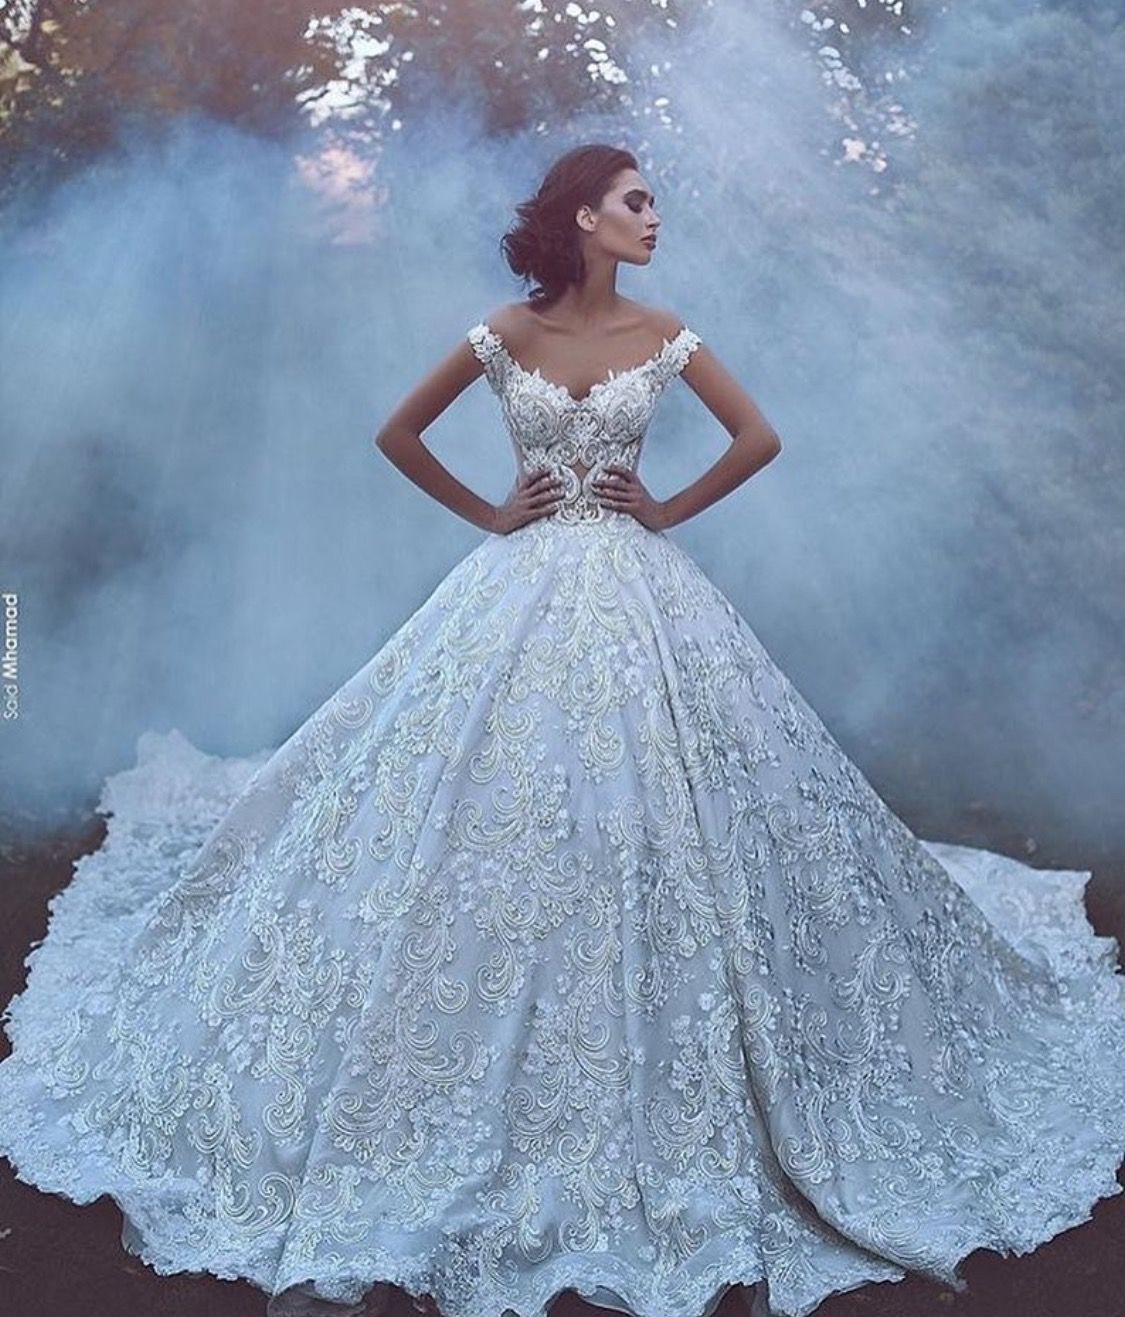 Wedding dresses - Bruidsjurken | Wedding | Pinterest | Vestidos de ...